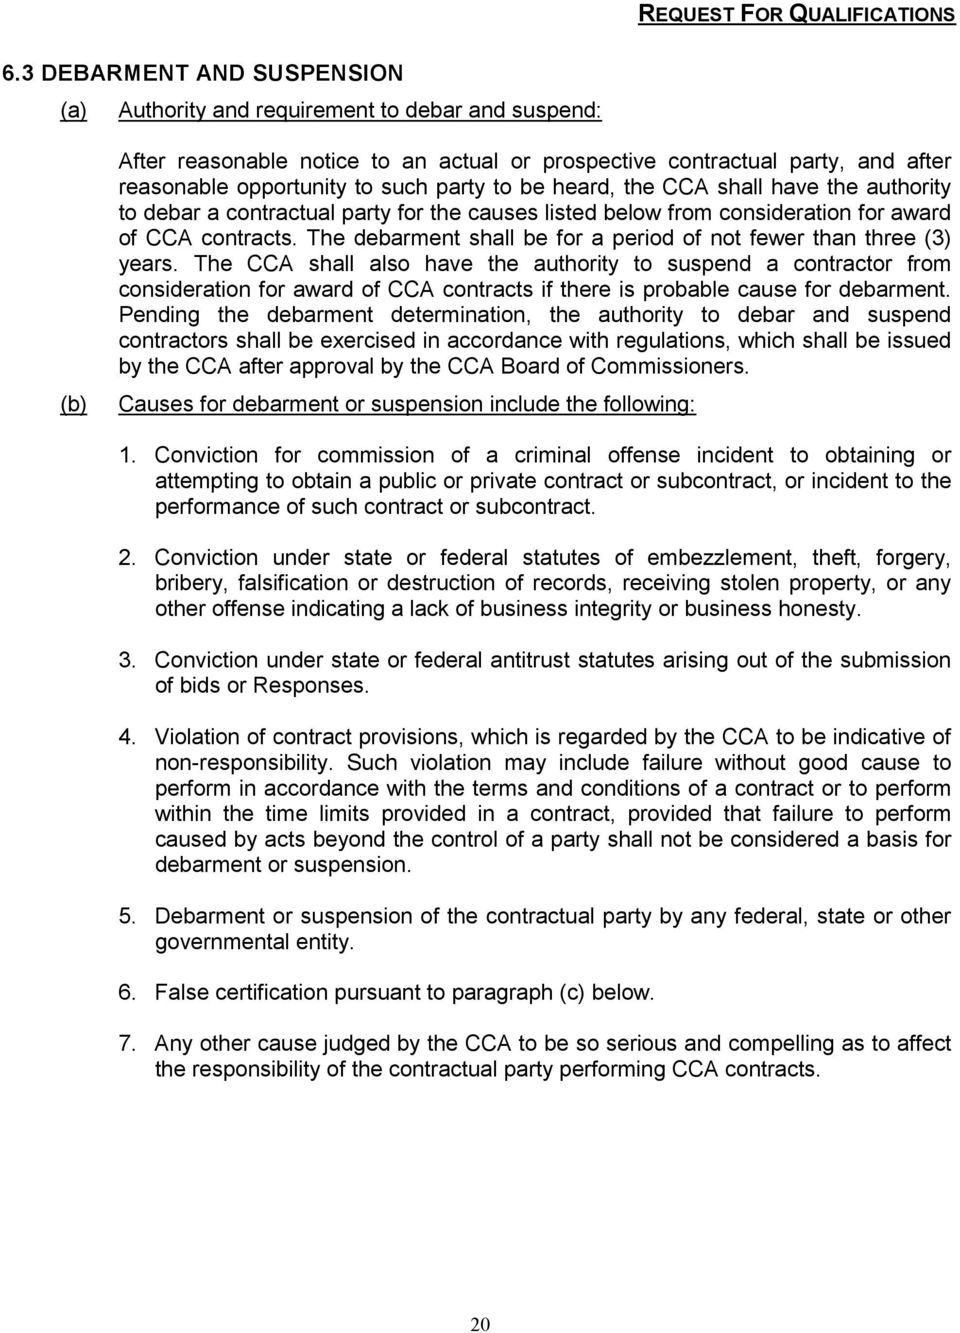 party to be heard, the CCA shall have the authority to debar a contractual party for the causes listed below from consideration for award of CCA contracts.